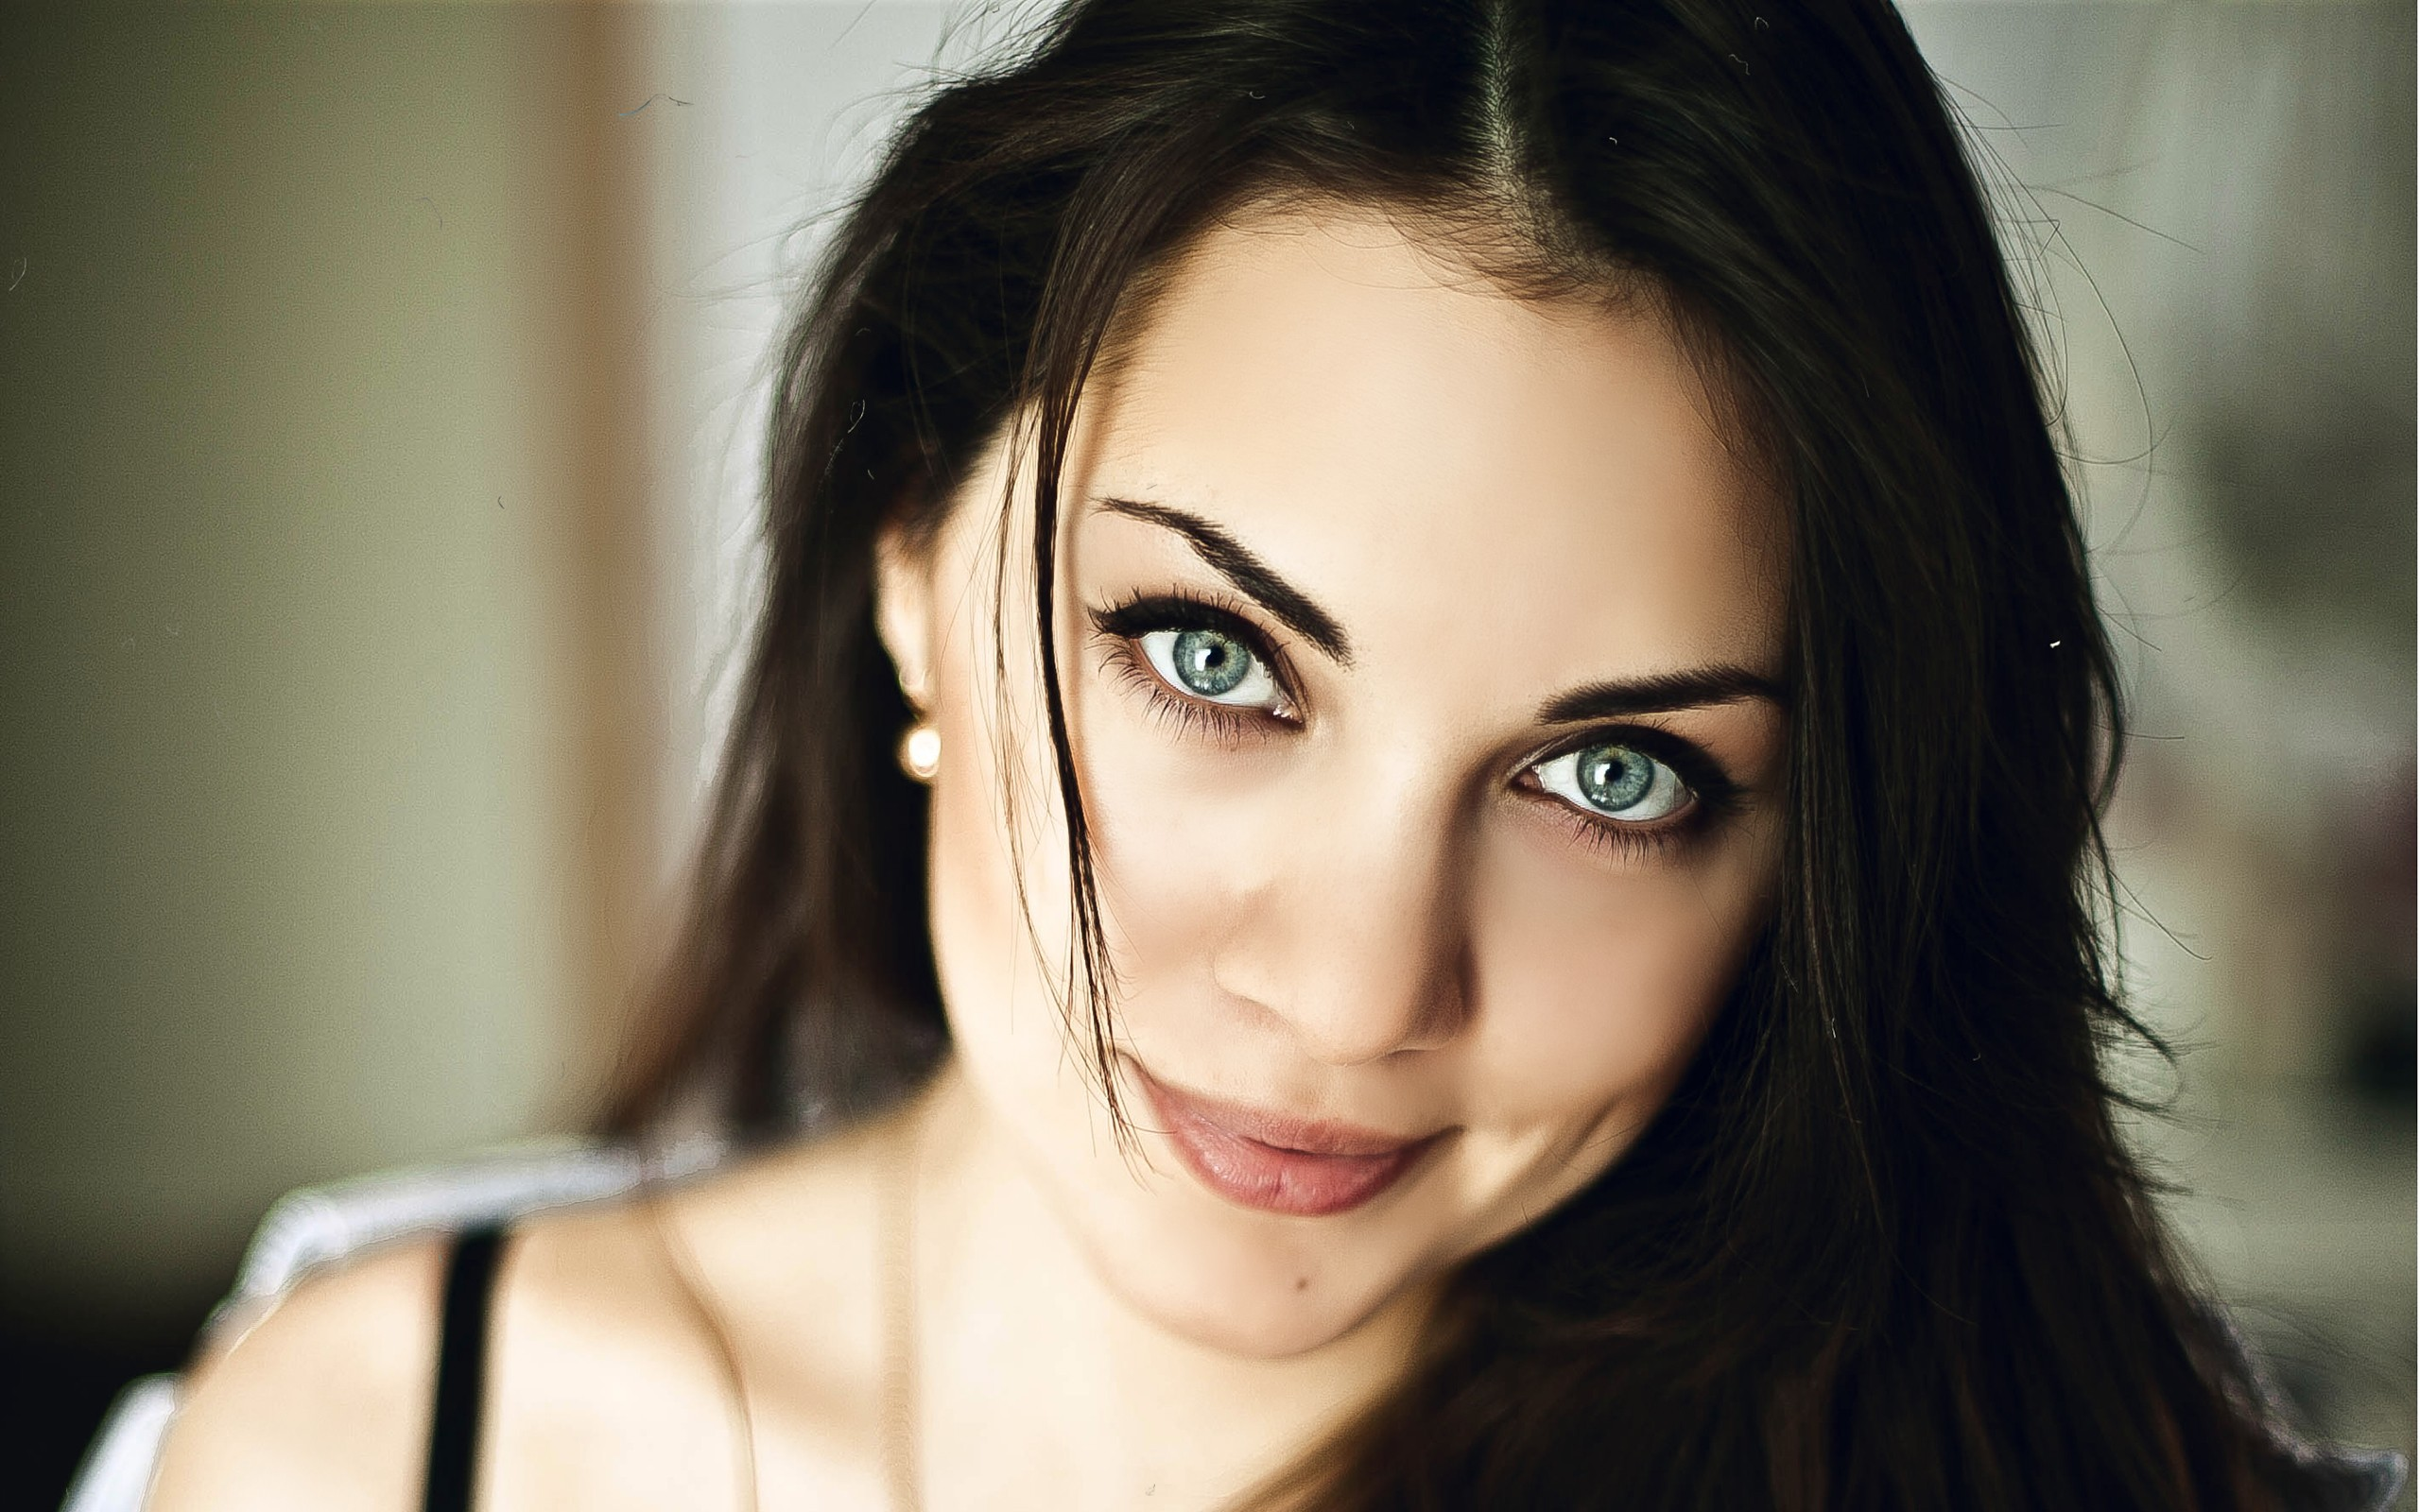 Animated Love Couple Wallpapers Cute Brunette Model With Blue Eyes Wallpapers Cute